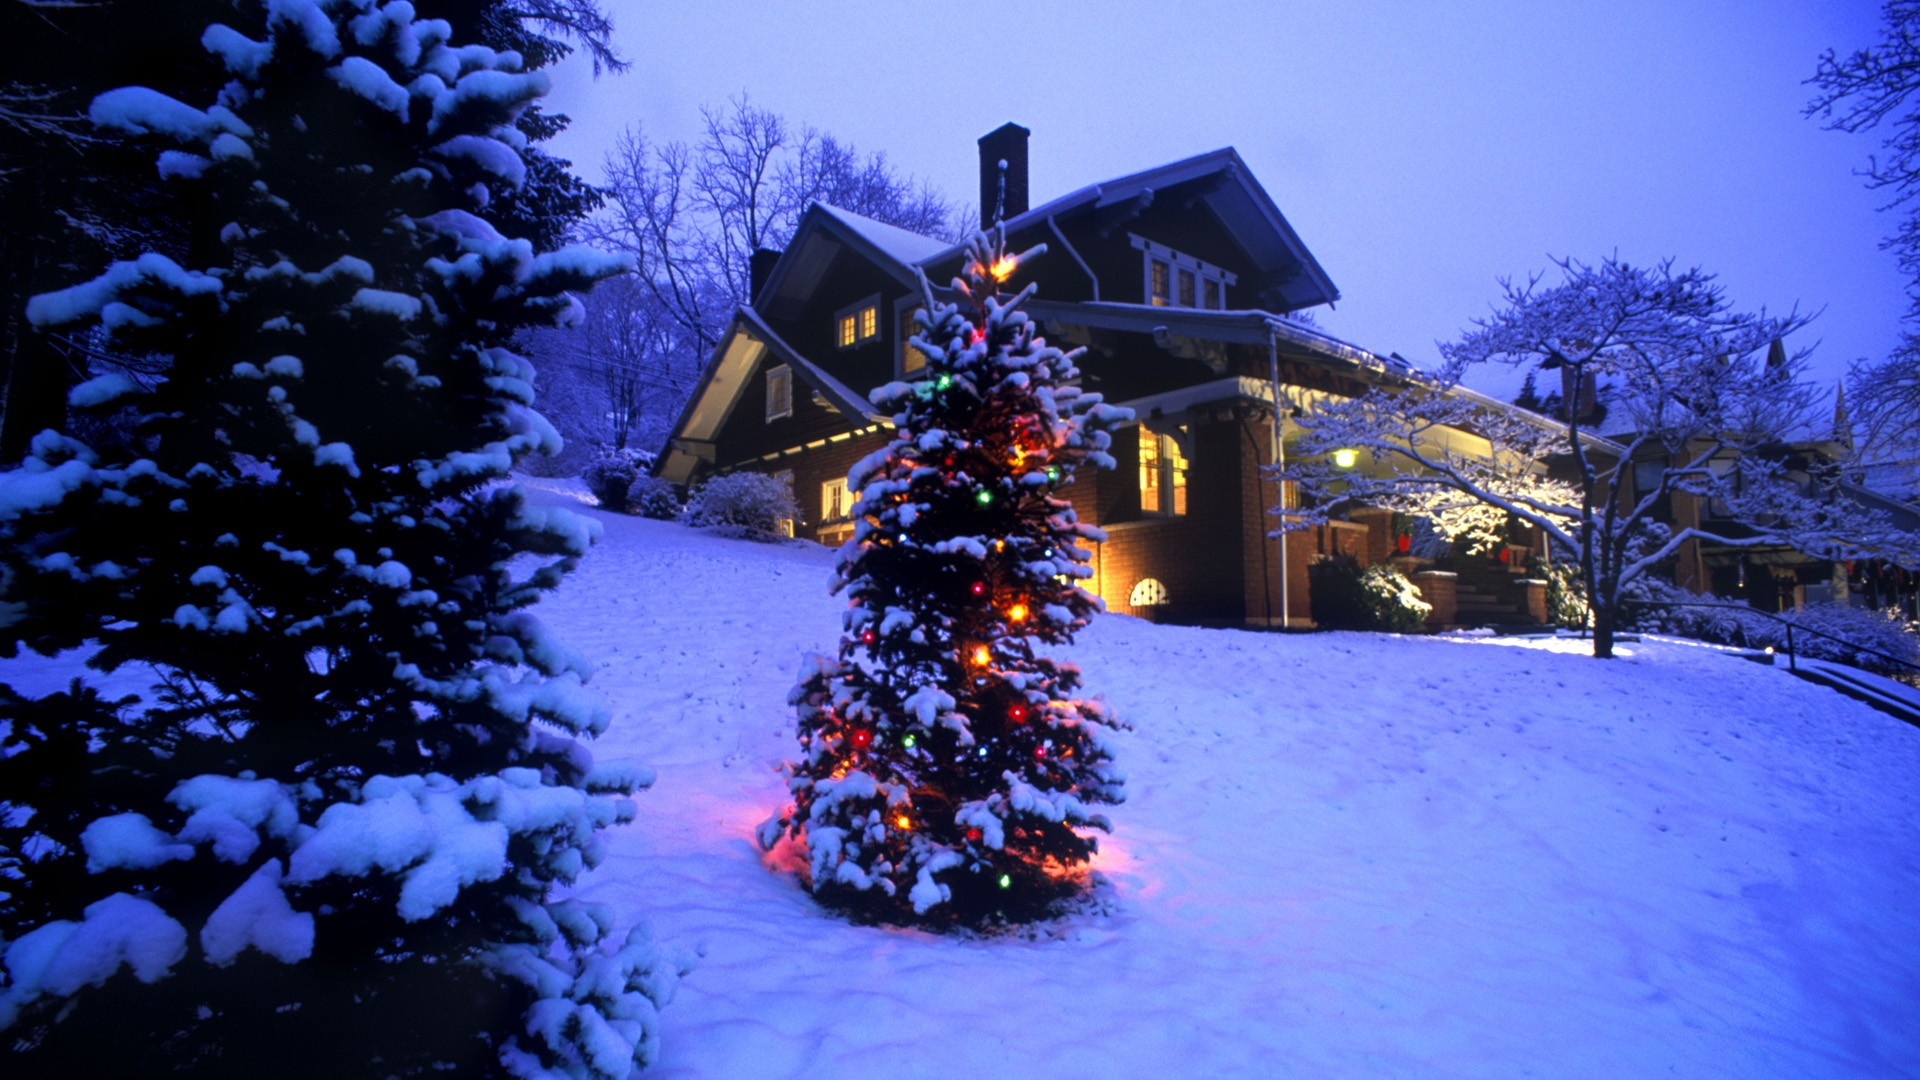 Must see Wallpaper Mountain Christmas - christmas-scene-in-snowy-mountains  Pictures_952957.jpg